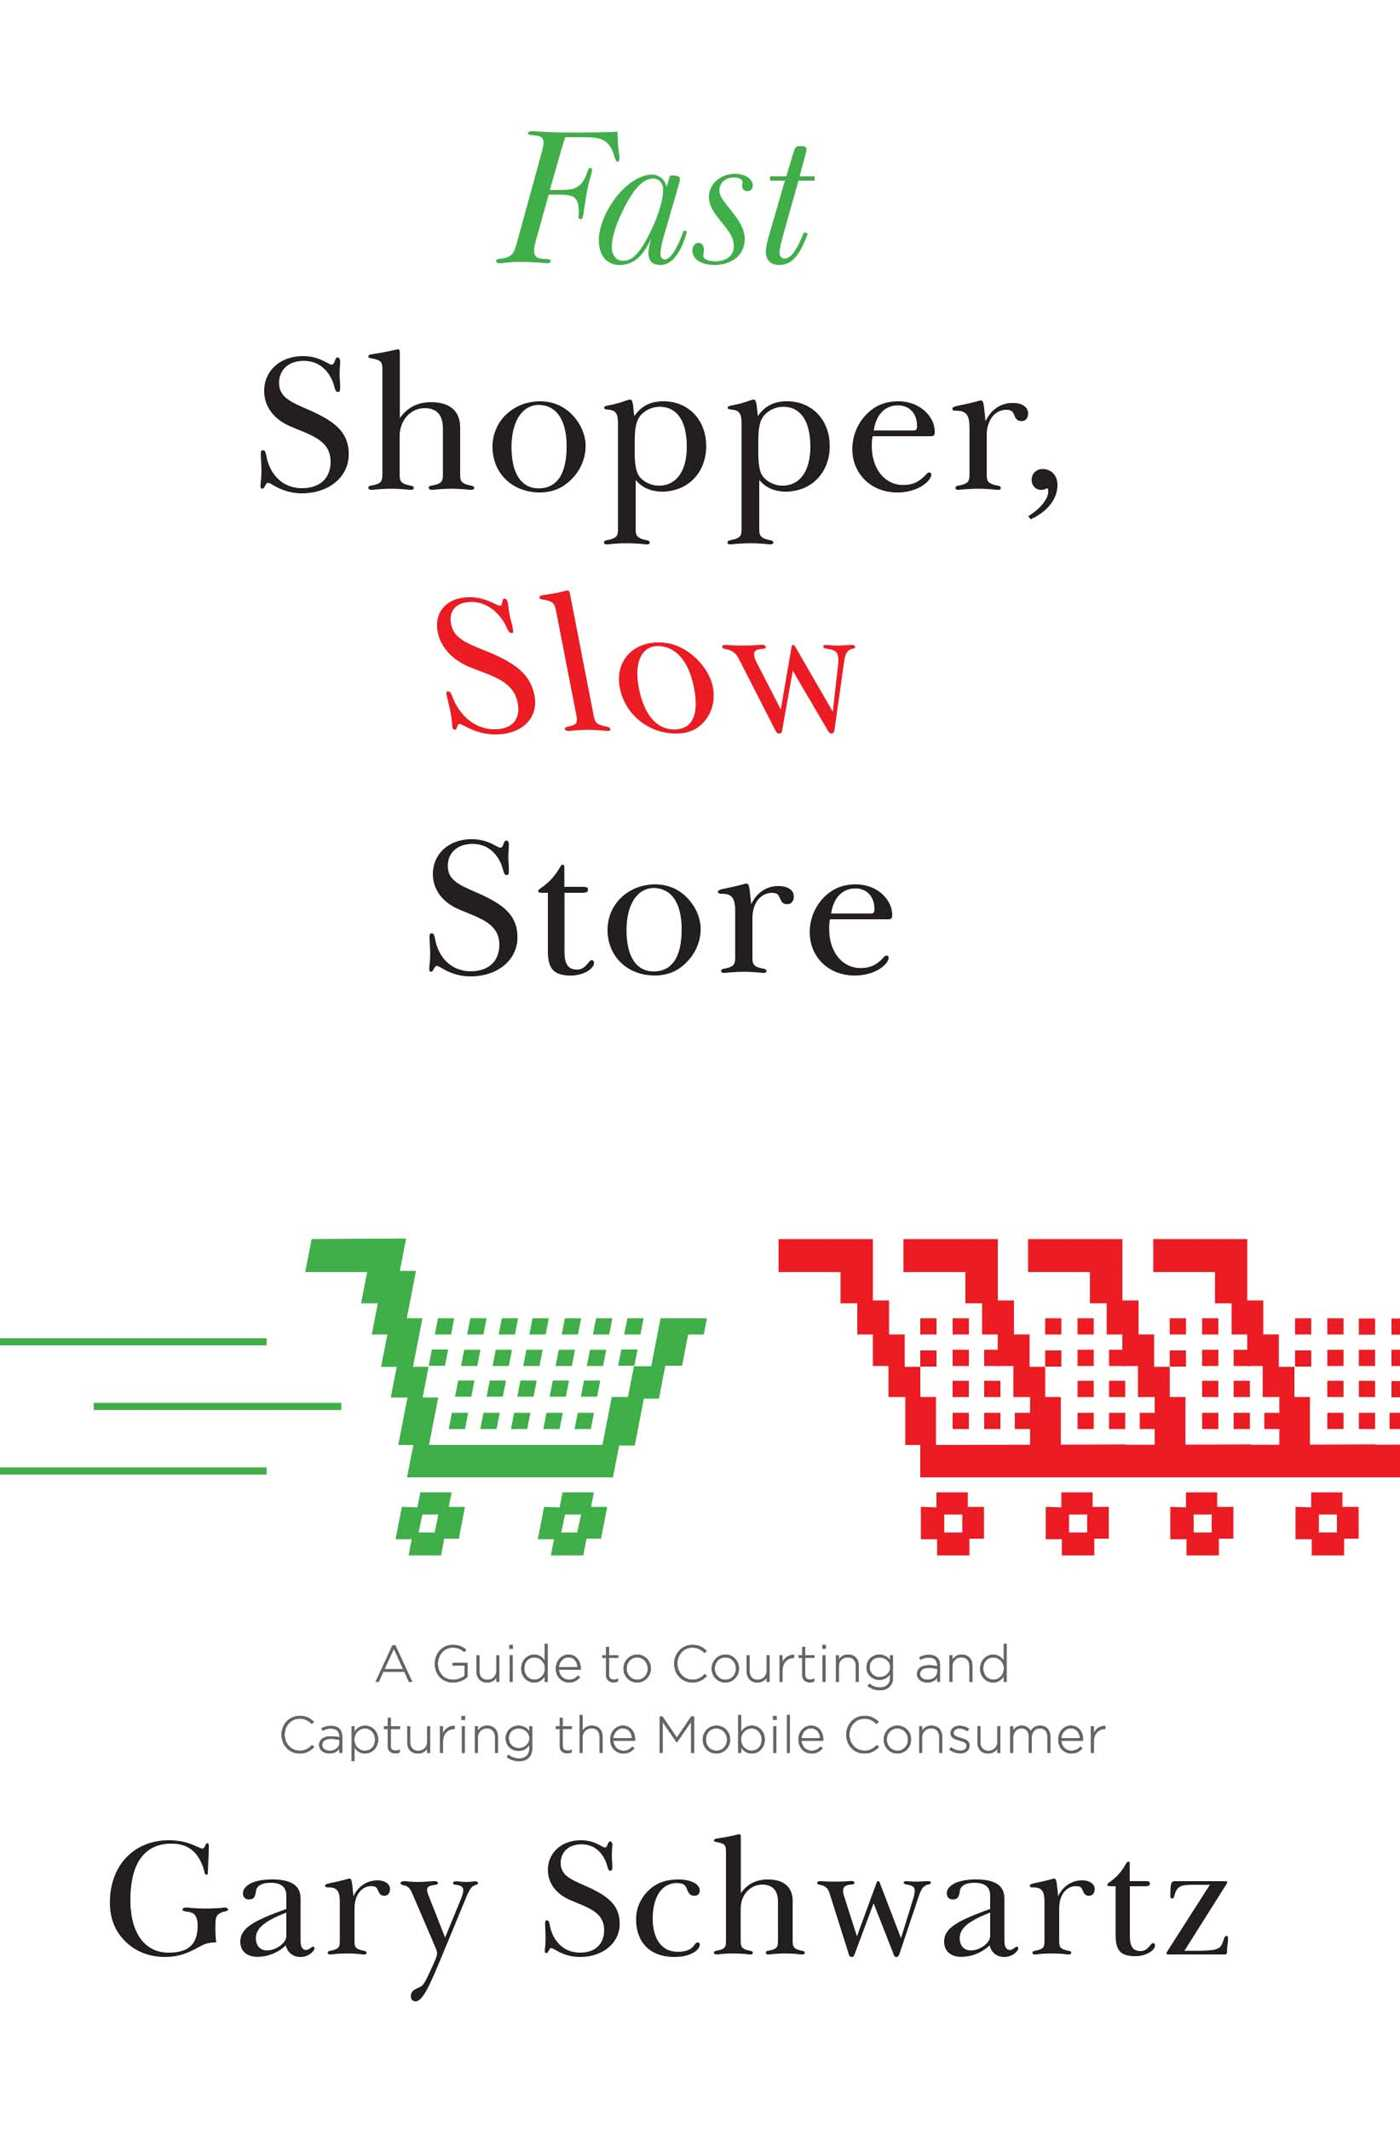 Fast shopper slow store 9781476718705 hr